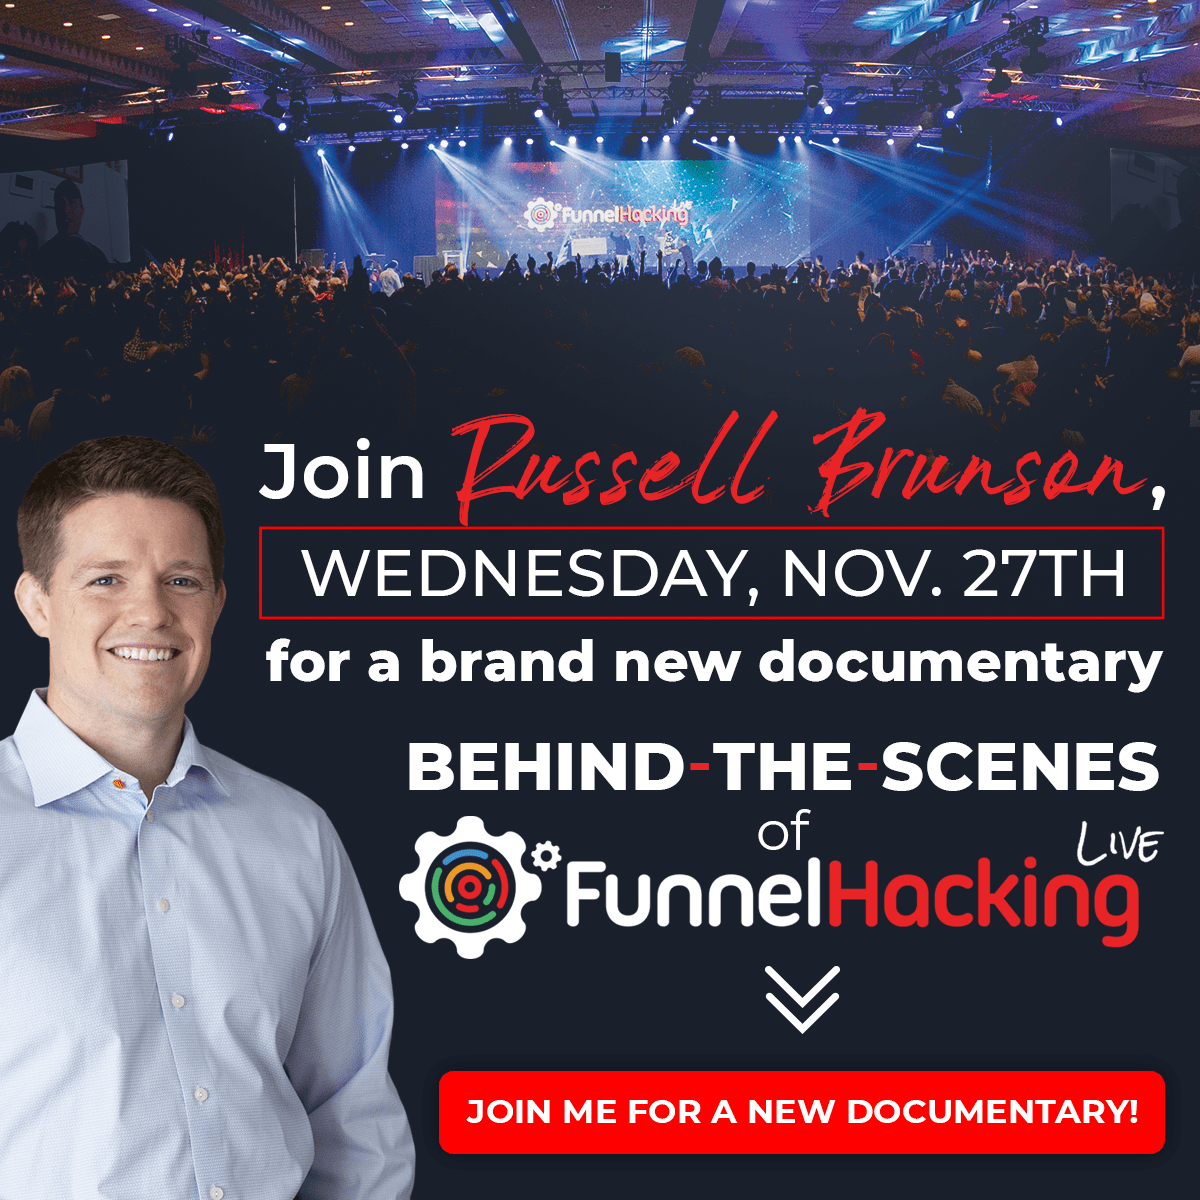 Funnel Hacking Live Documentary